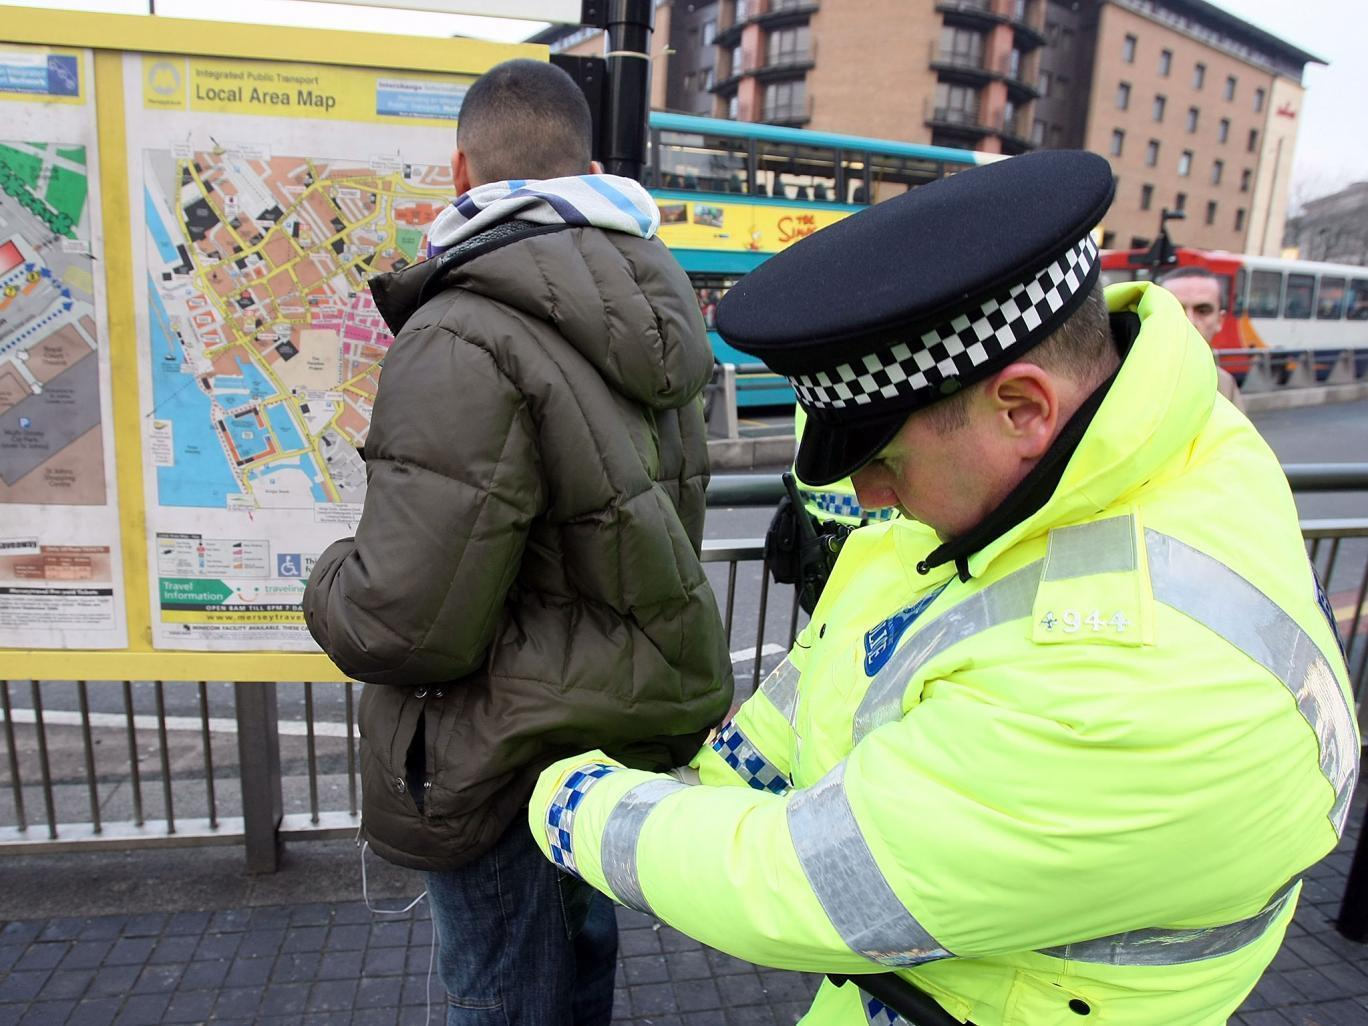 Stop And Search In The UK Is Fundamentally Flawed, And